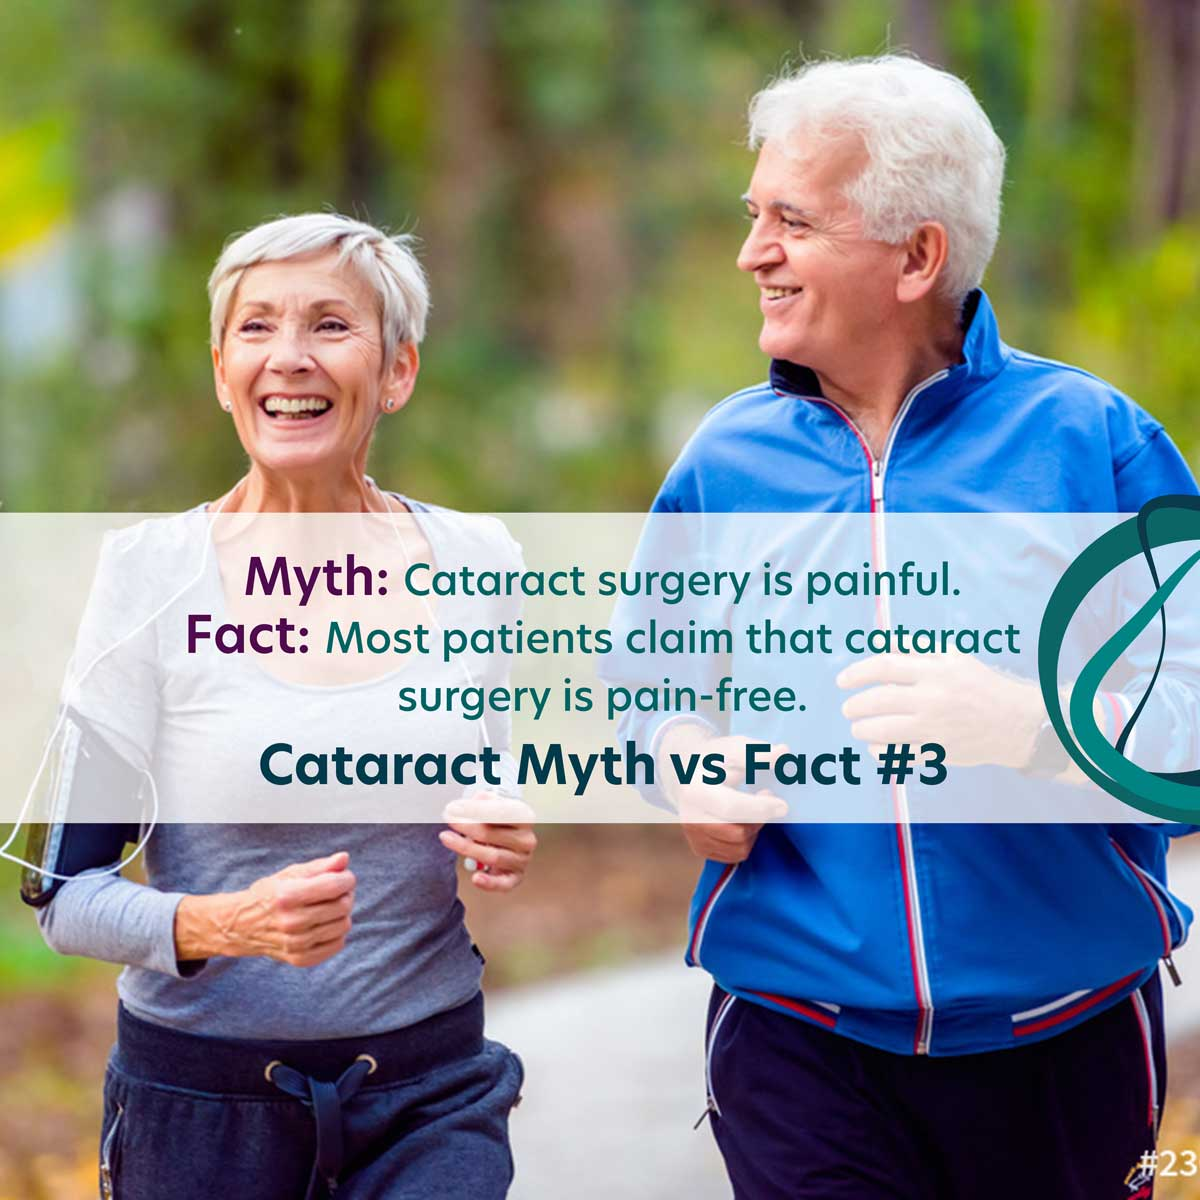 Cataract Myth vs Fact #3